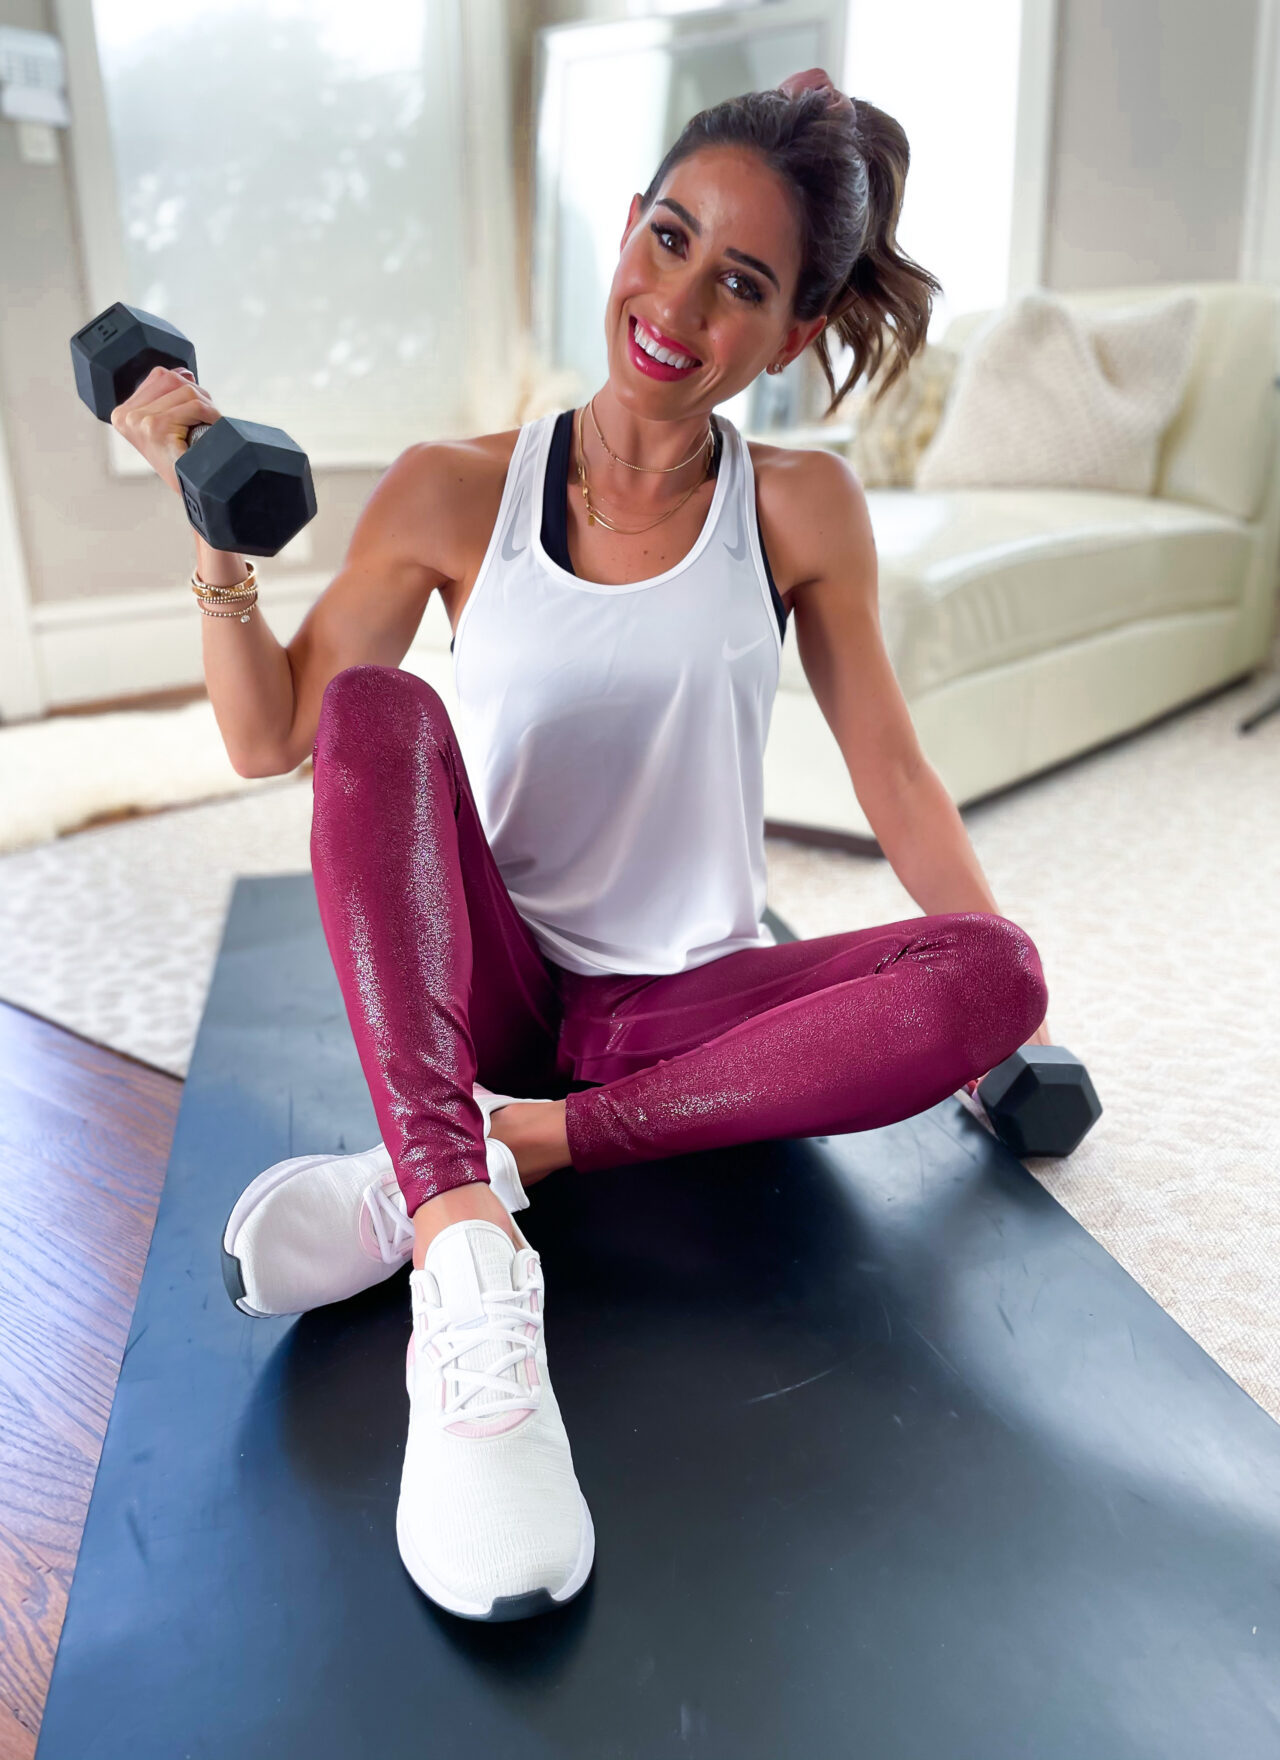 lifestyle and fashion blogger alexis belbel sharing an at home full body workout with dumbbells with a nike outfit from Academy Sports and Outdoors   adoubledose.com